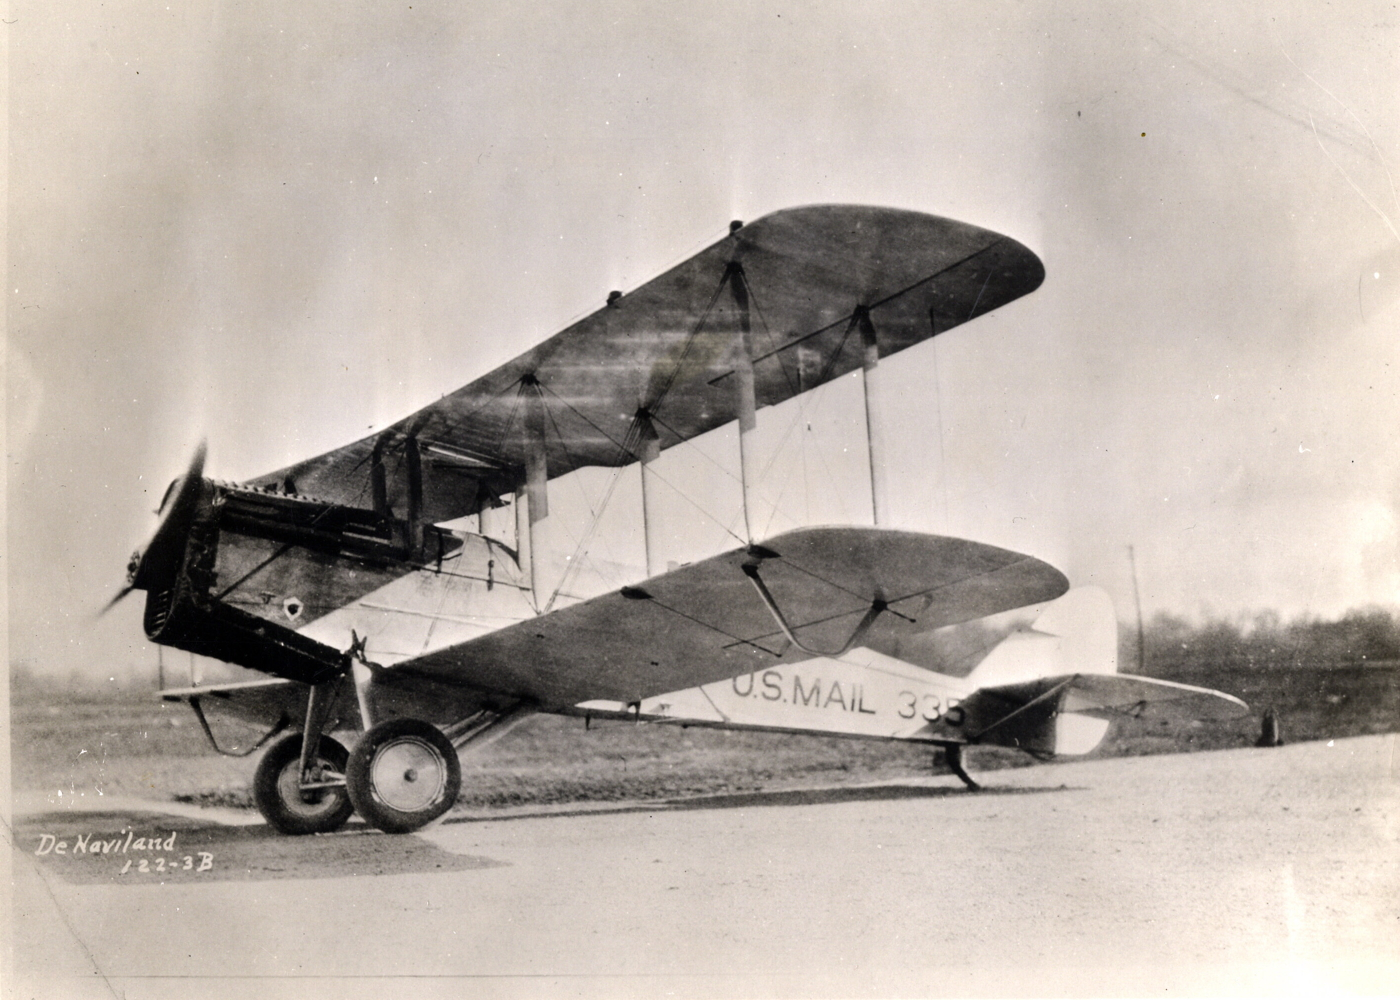 de Havilland airmail plane